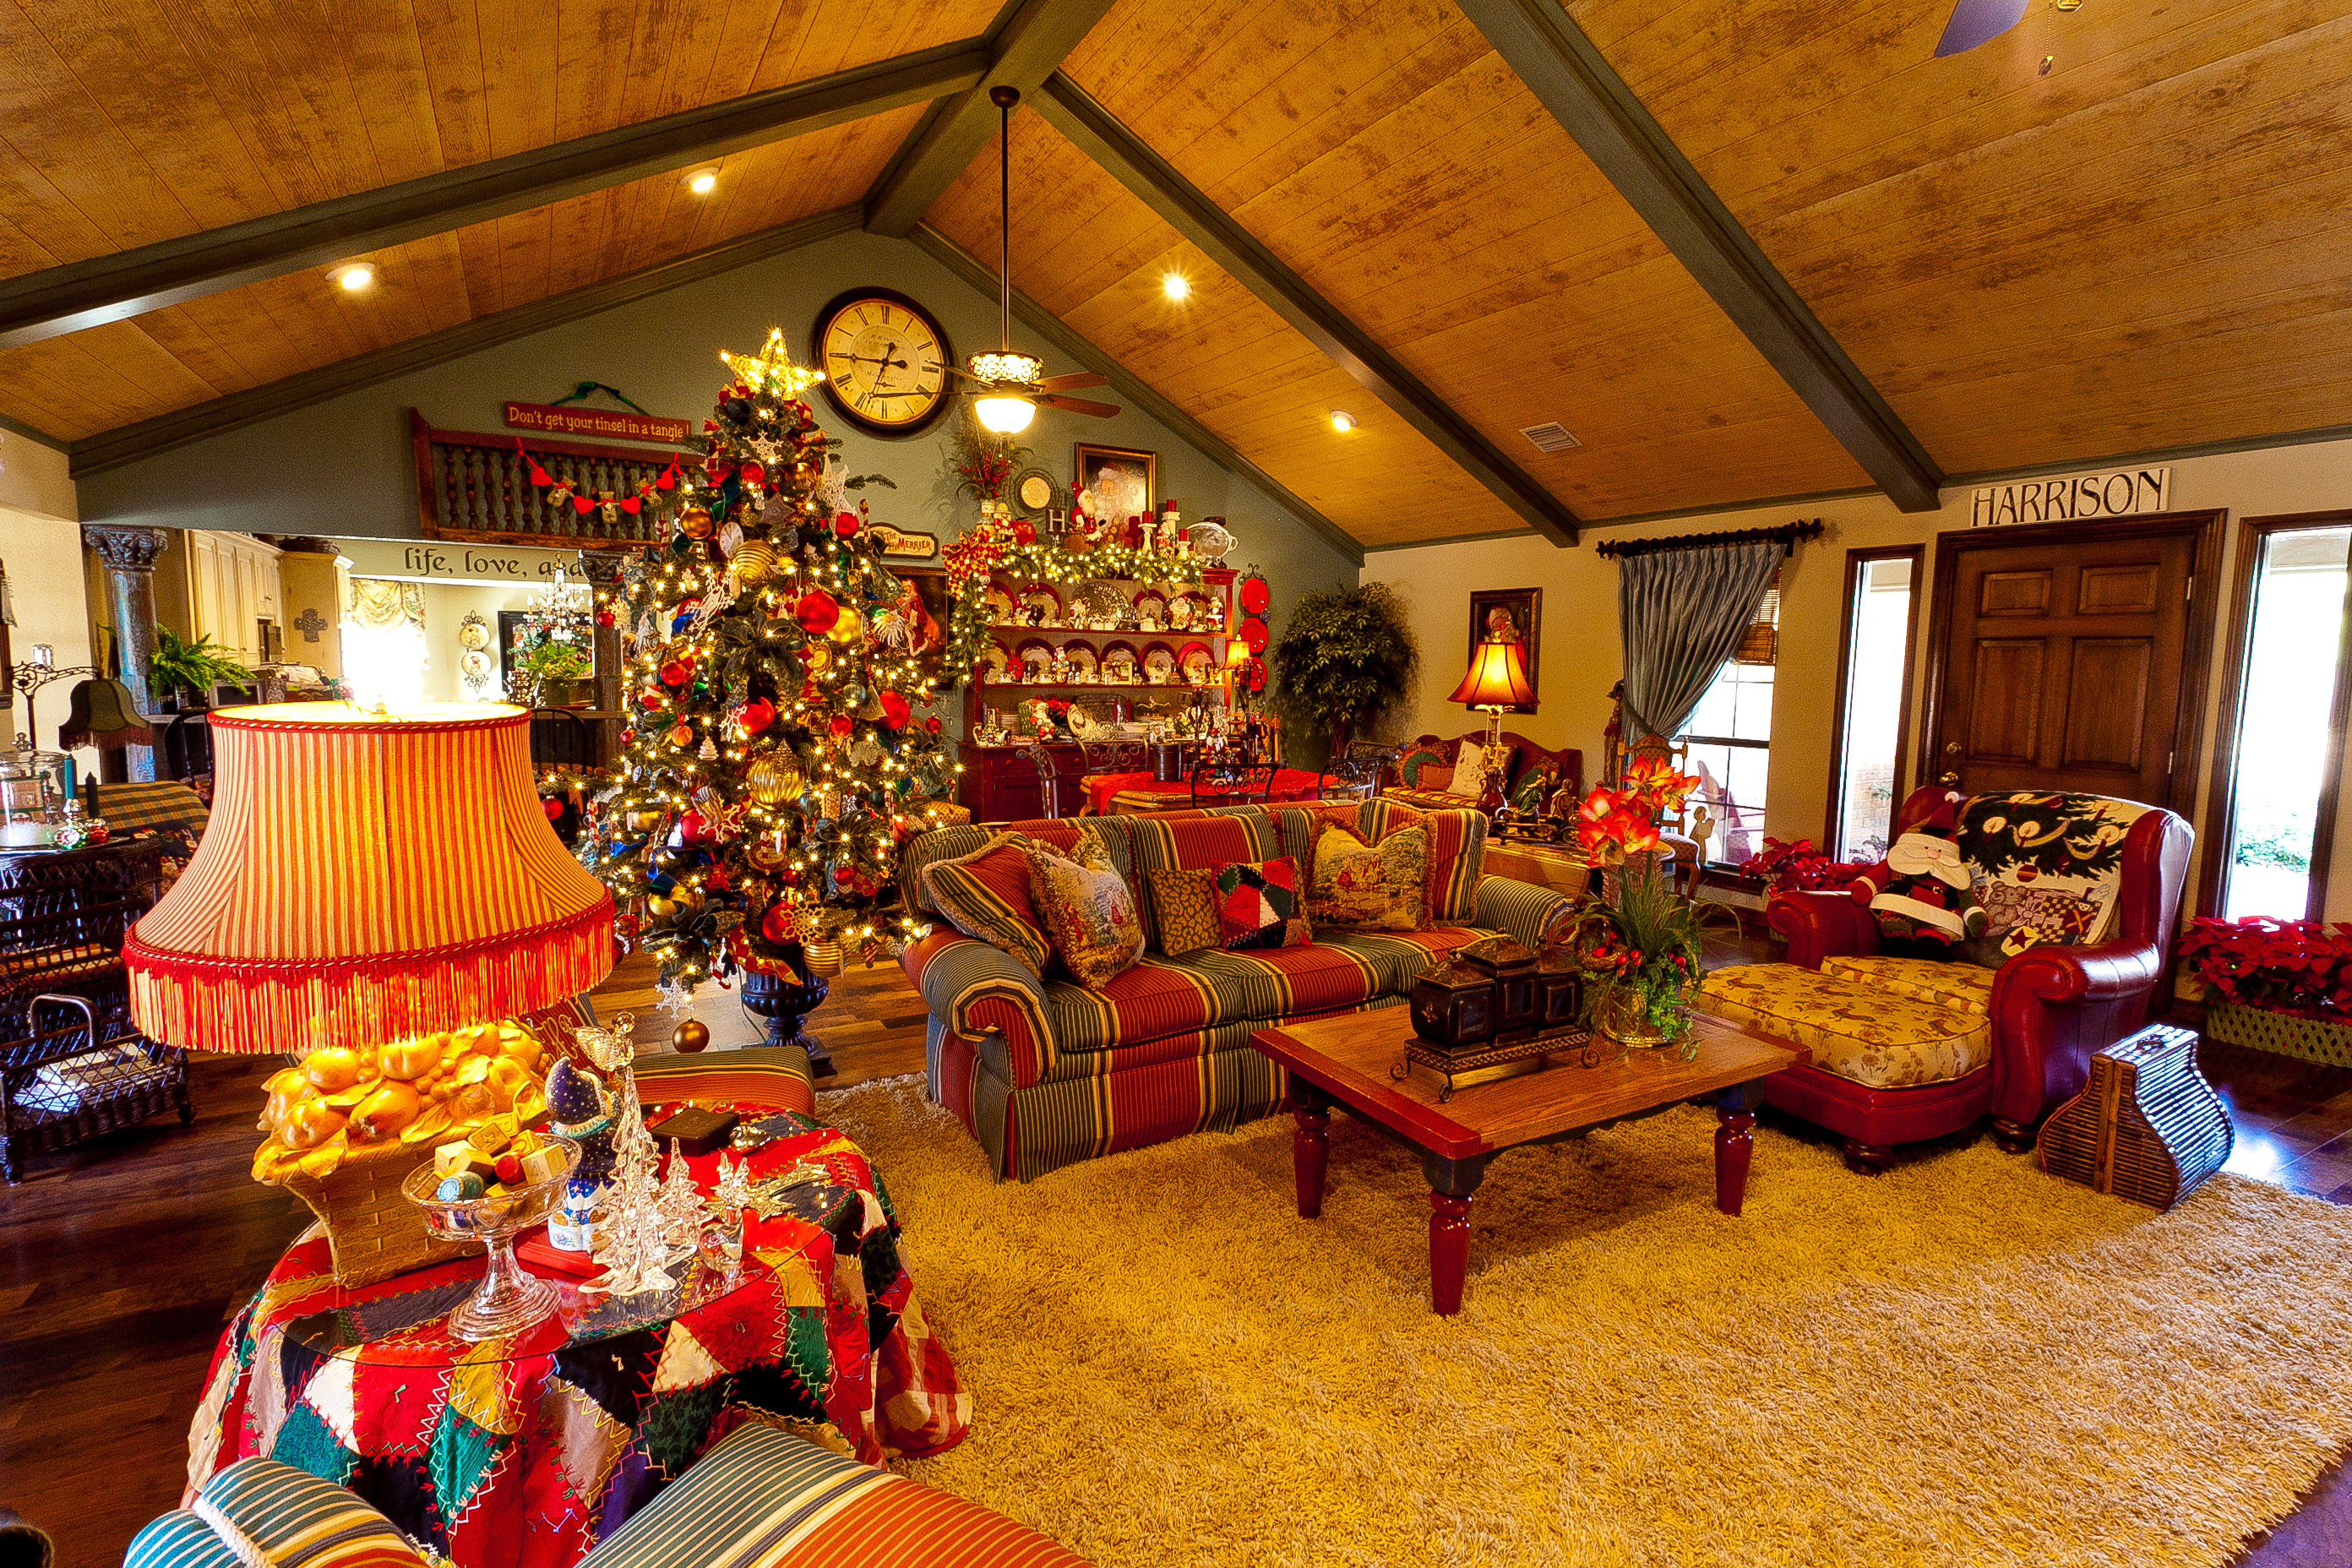 Home Decorating Shows Simple With French Country Homes Decorated for Christmas Image